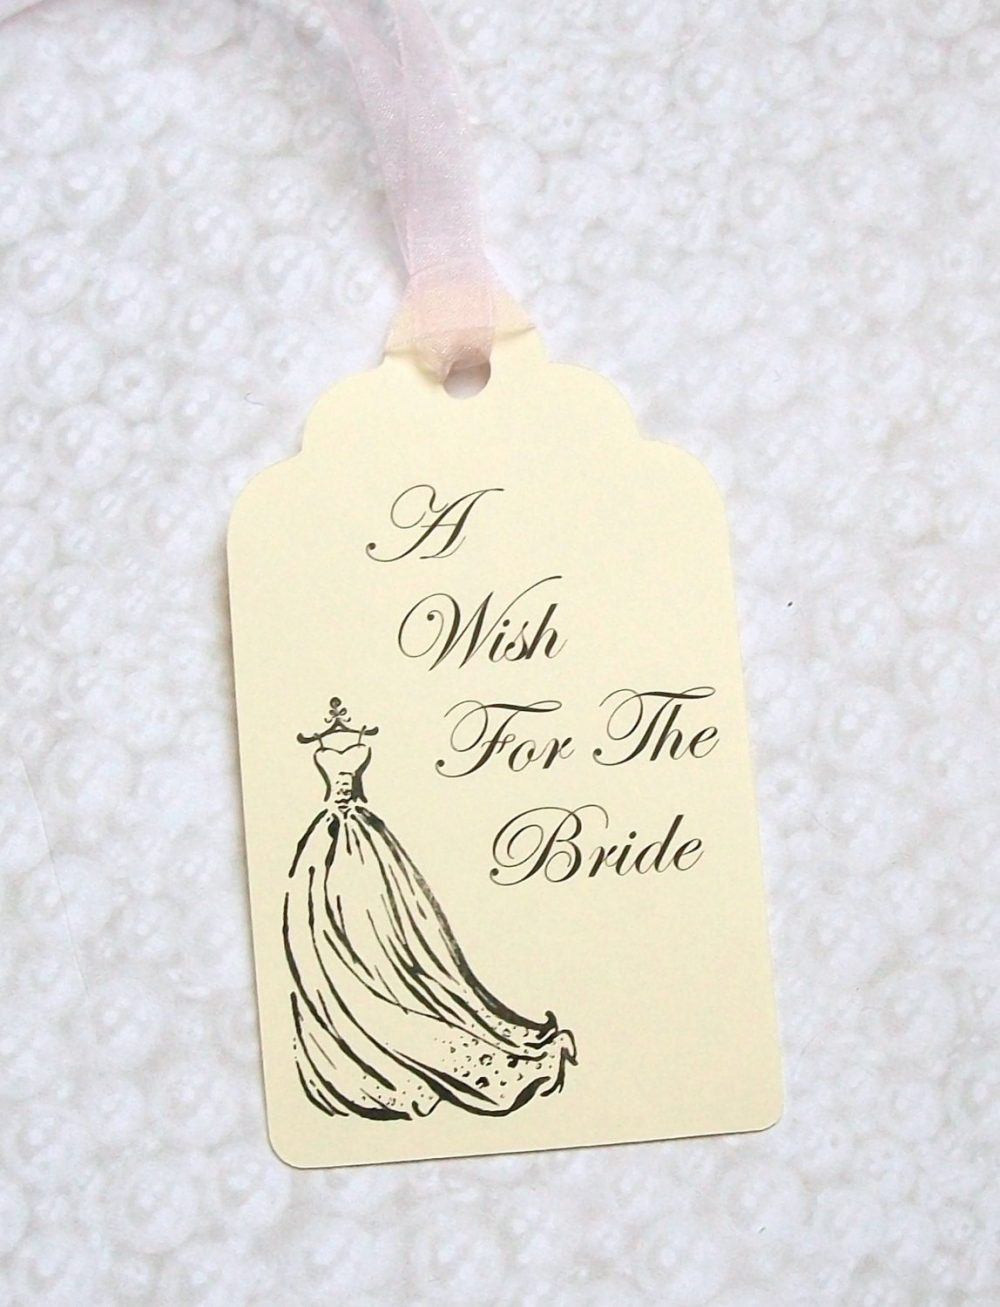 Bridal Shower Wishing Tree Tags - Wedding Gown A Wish For The Bride | Set Of 25